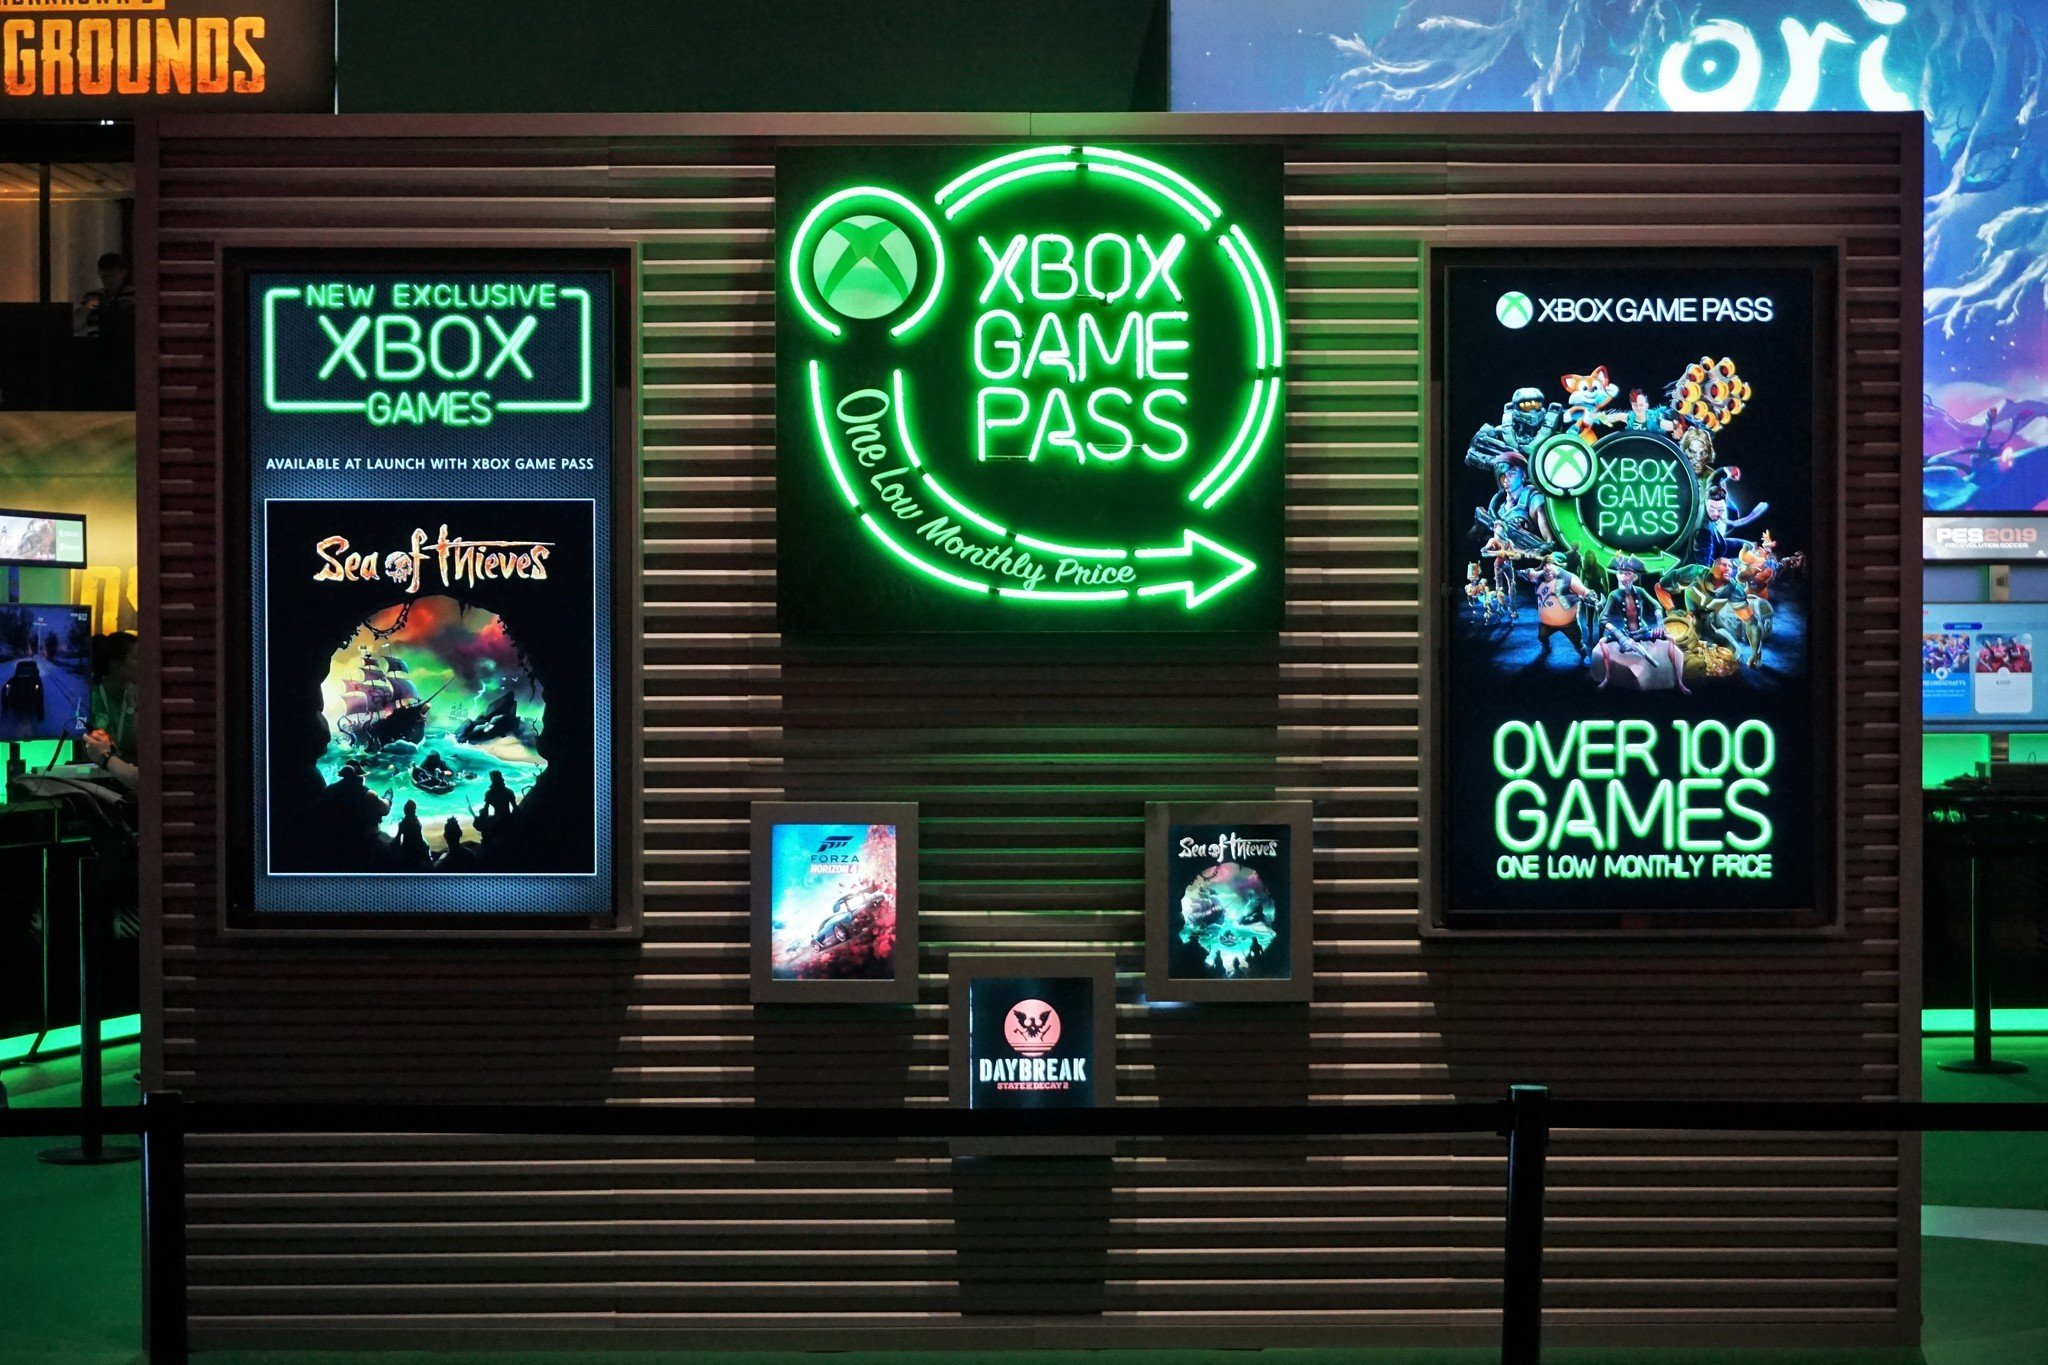 Xbox Game Pass Ultimate Bundles Xbox Live Gold Game Pass